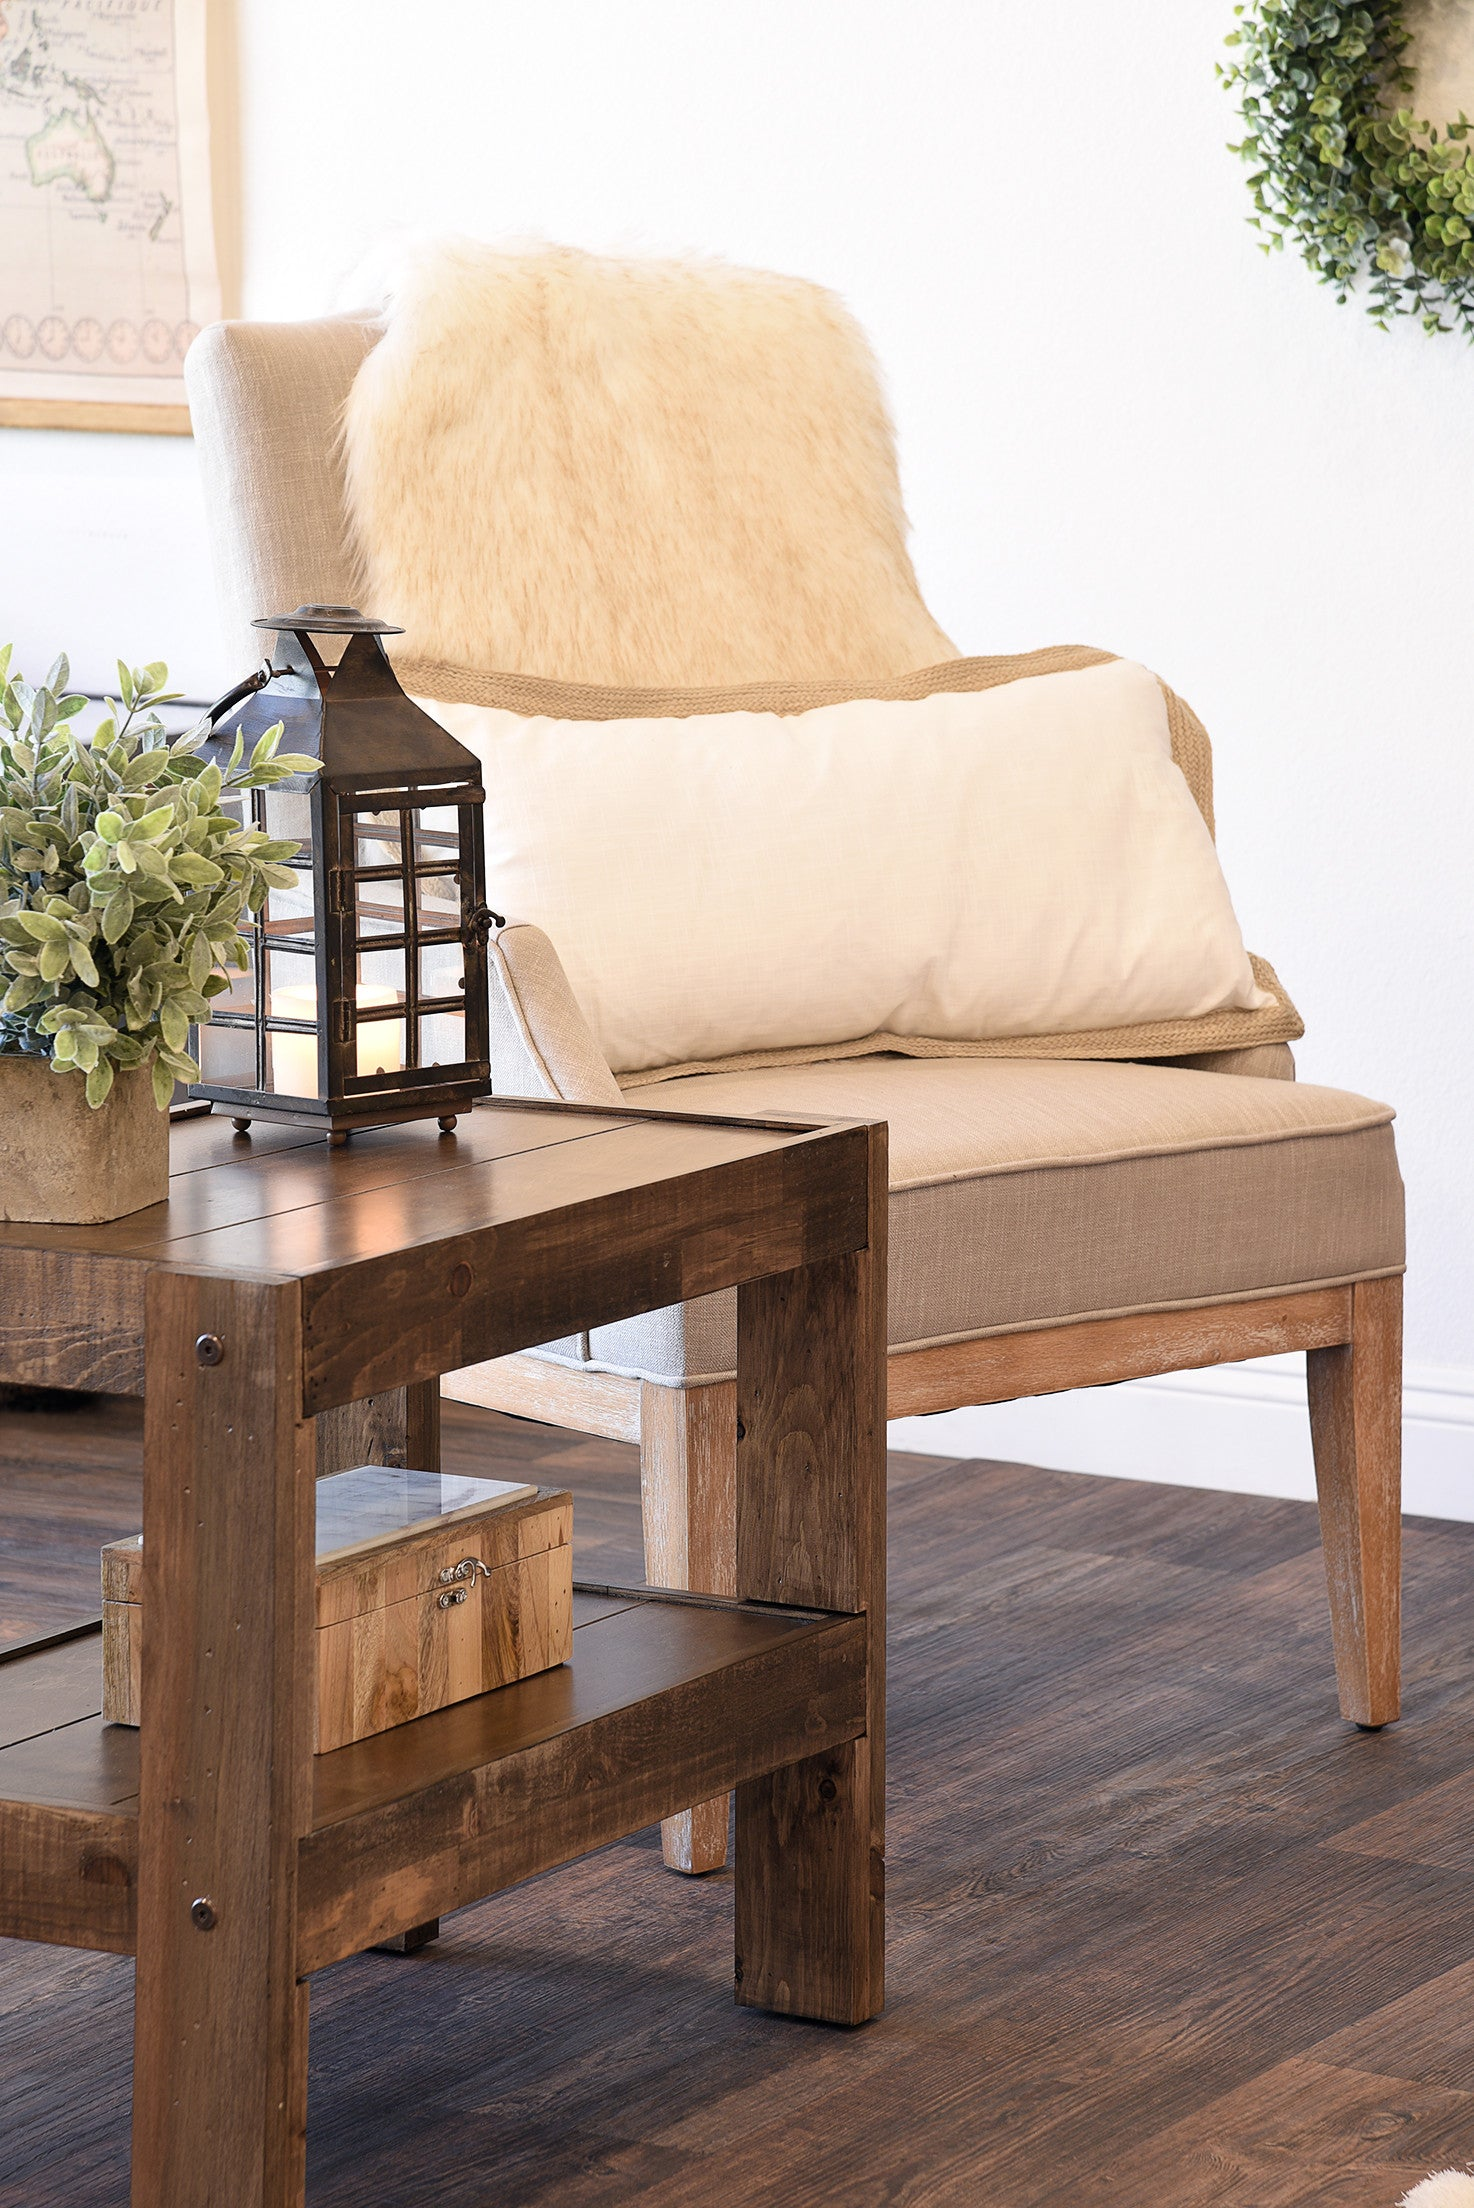 industrial modern furniture. Reclaimed Rustic Farmhouse Pallet Wood Style End Table / Nightstand - PresEARTH Spice Industrial Modern Furniture D